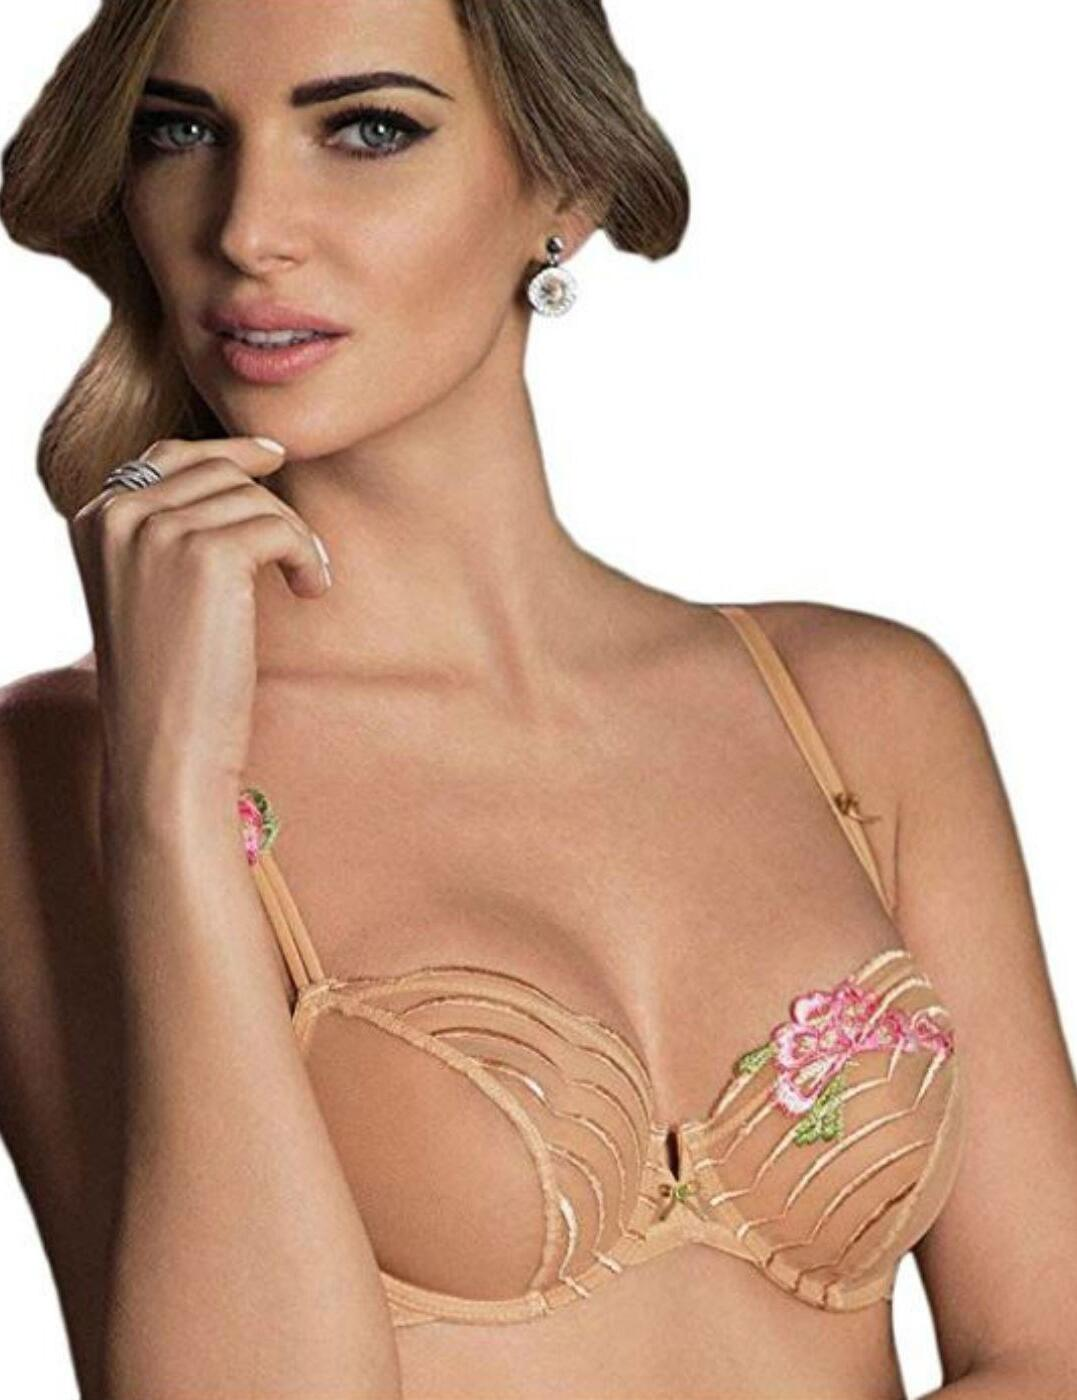 108002 Wacoal Intuition Embroidered Balcony Bra - 108002 Toasted Beige